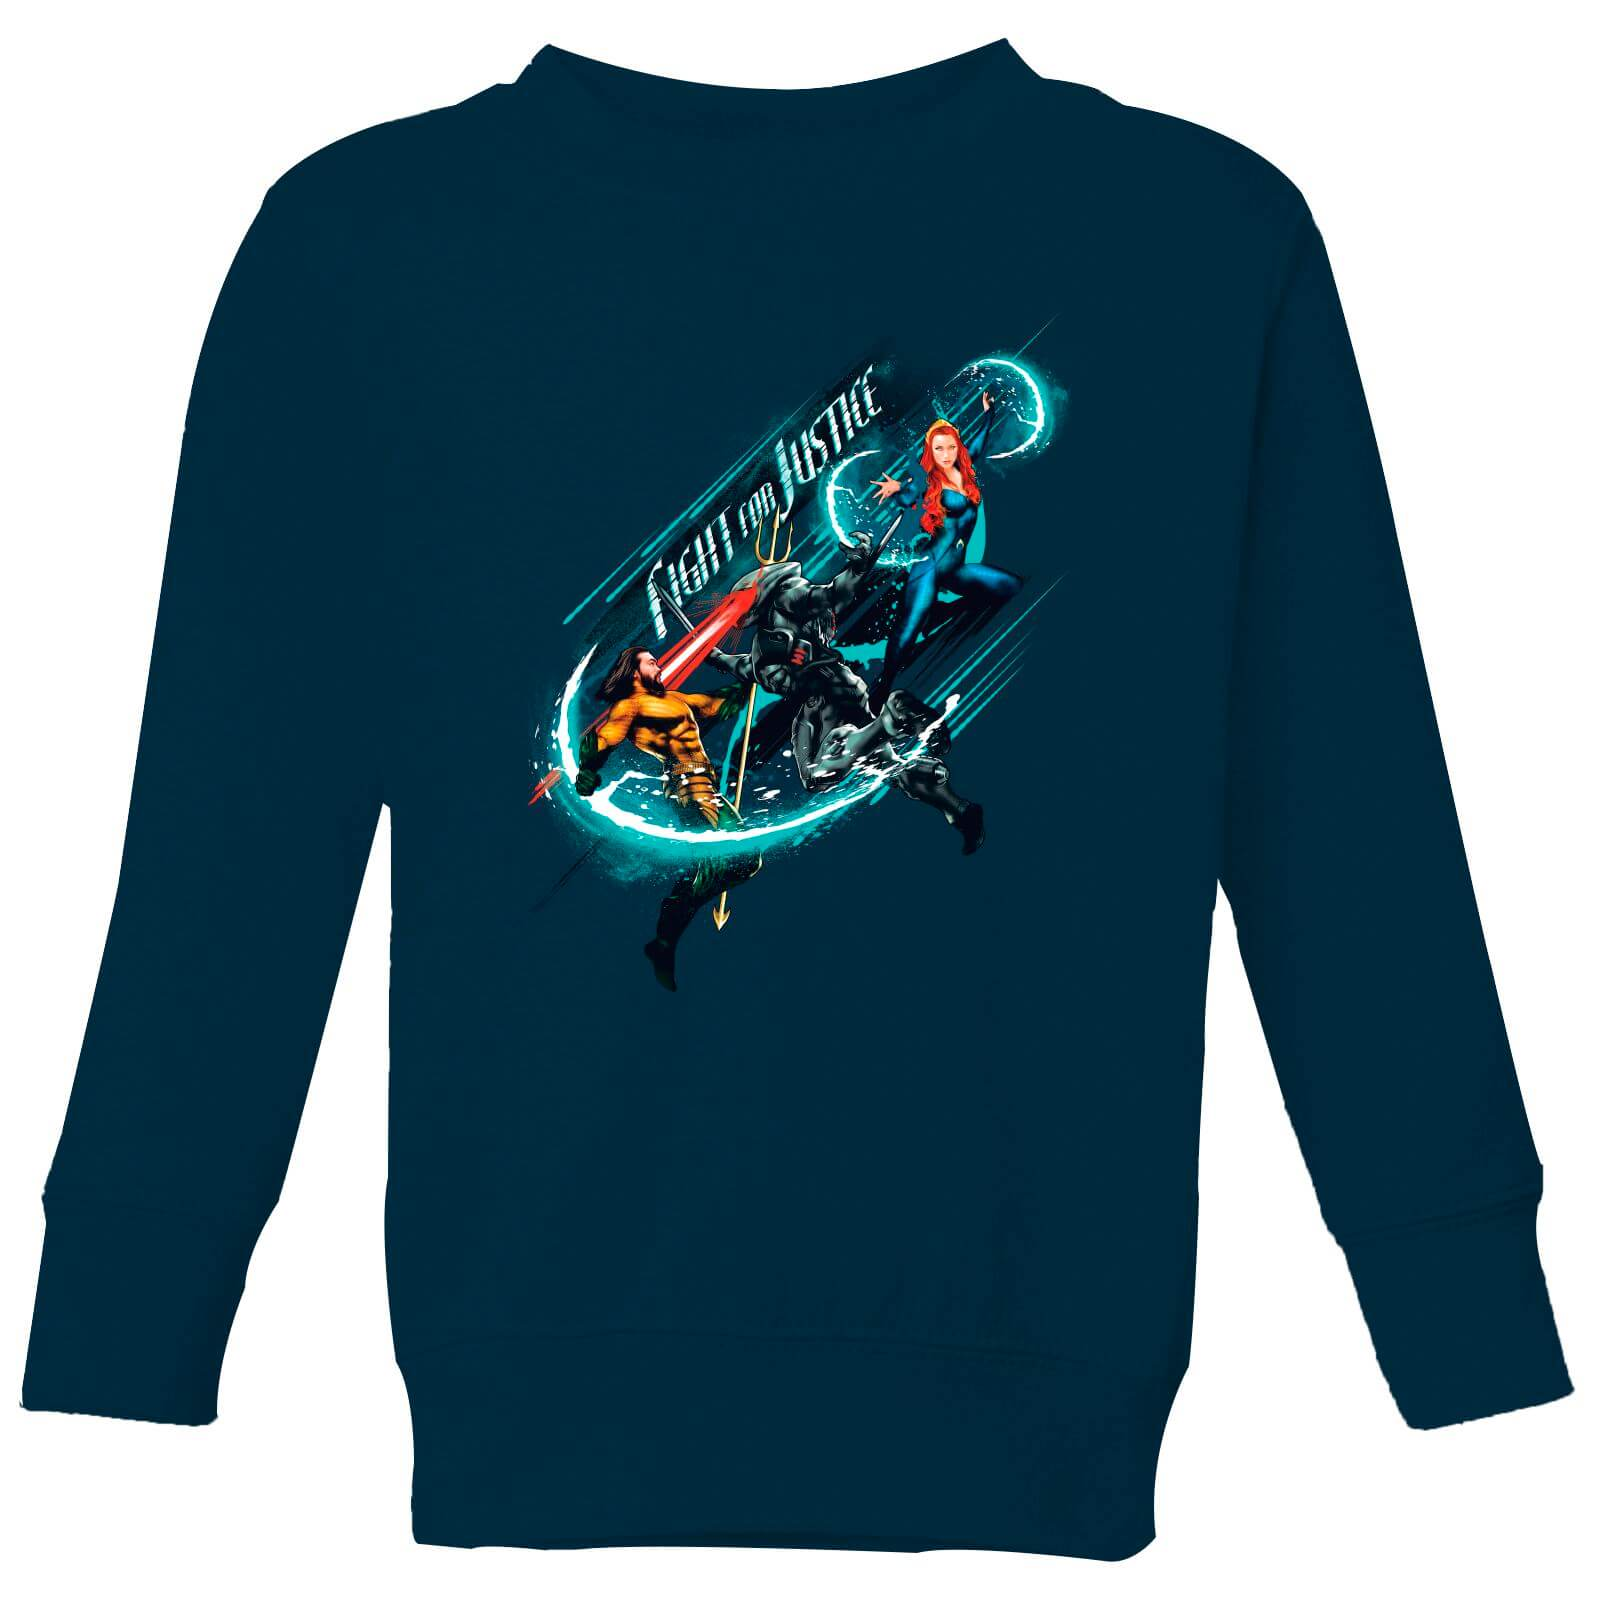 f13612efe77 Aquaman Fight for Justice Kids' Sweatshirt - Navy | IWOOT